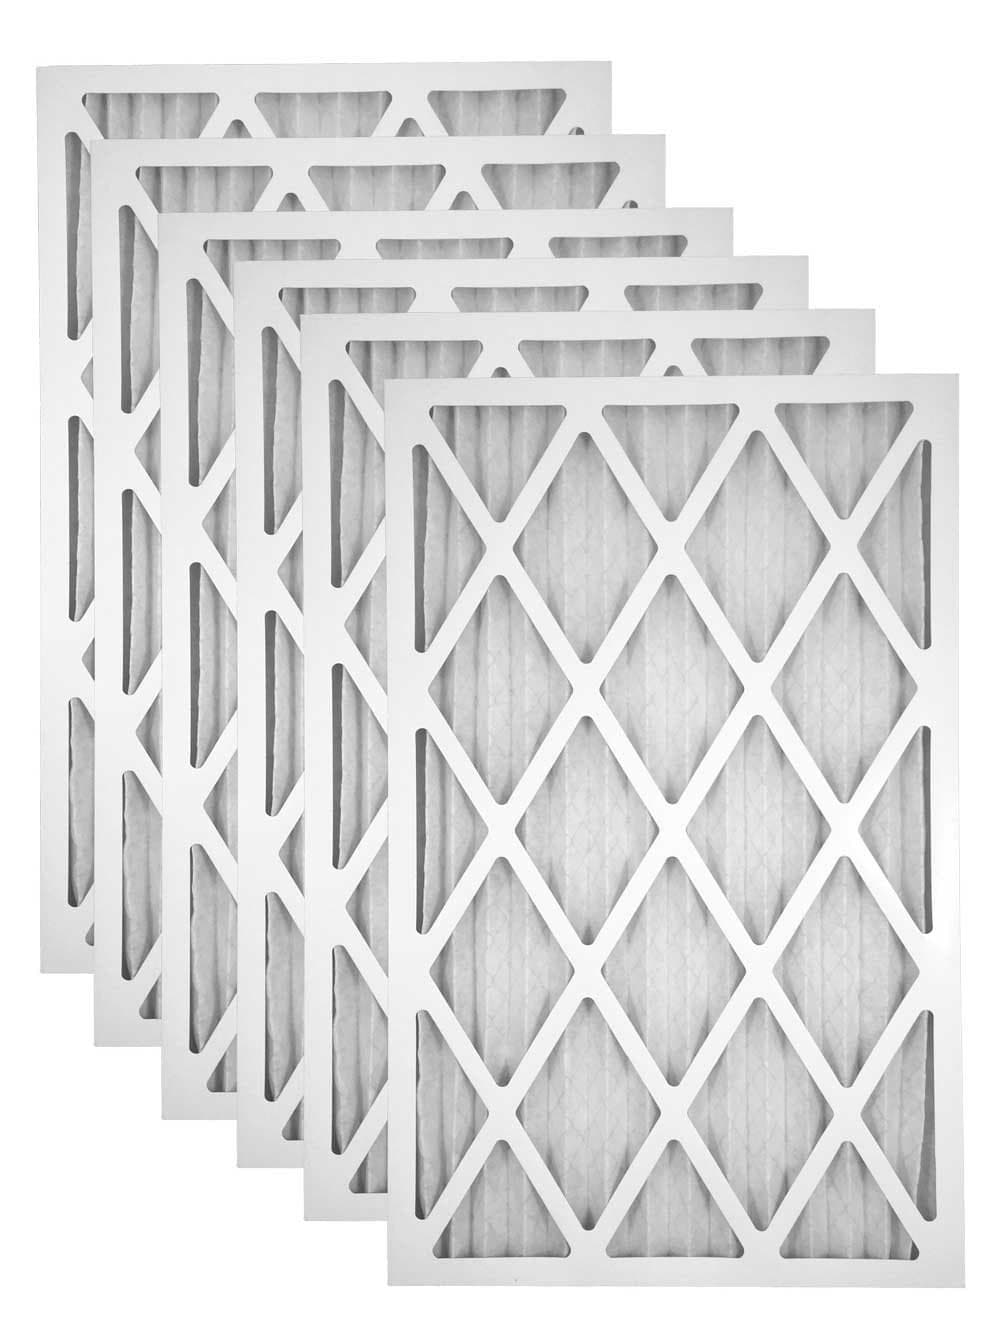 12x18x1 Merv 11 AC Furnace Filter - Case of 6